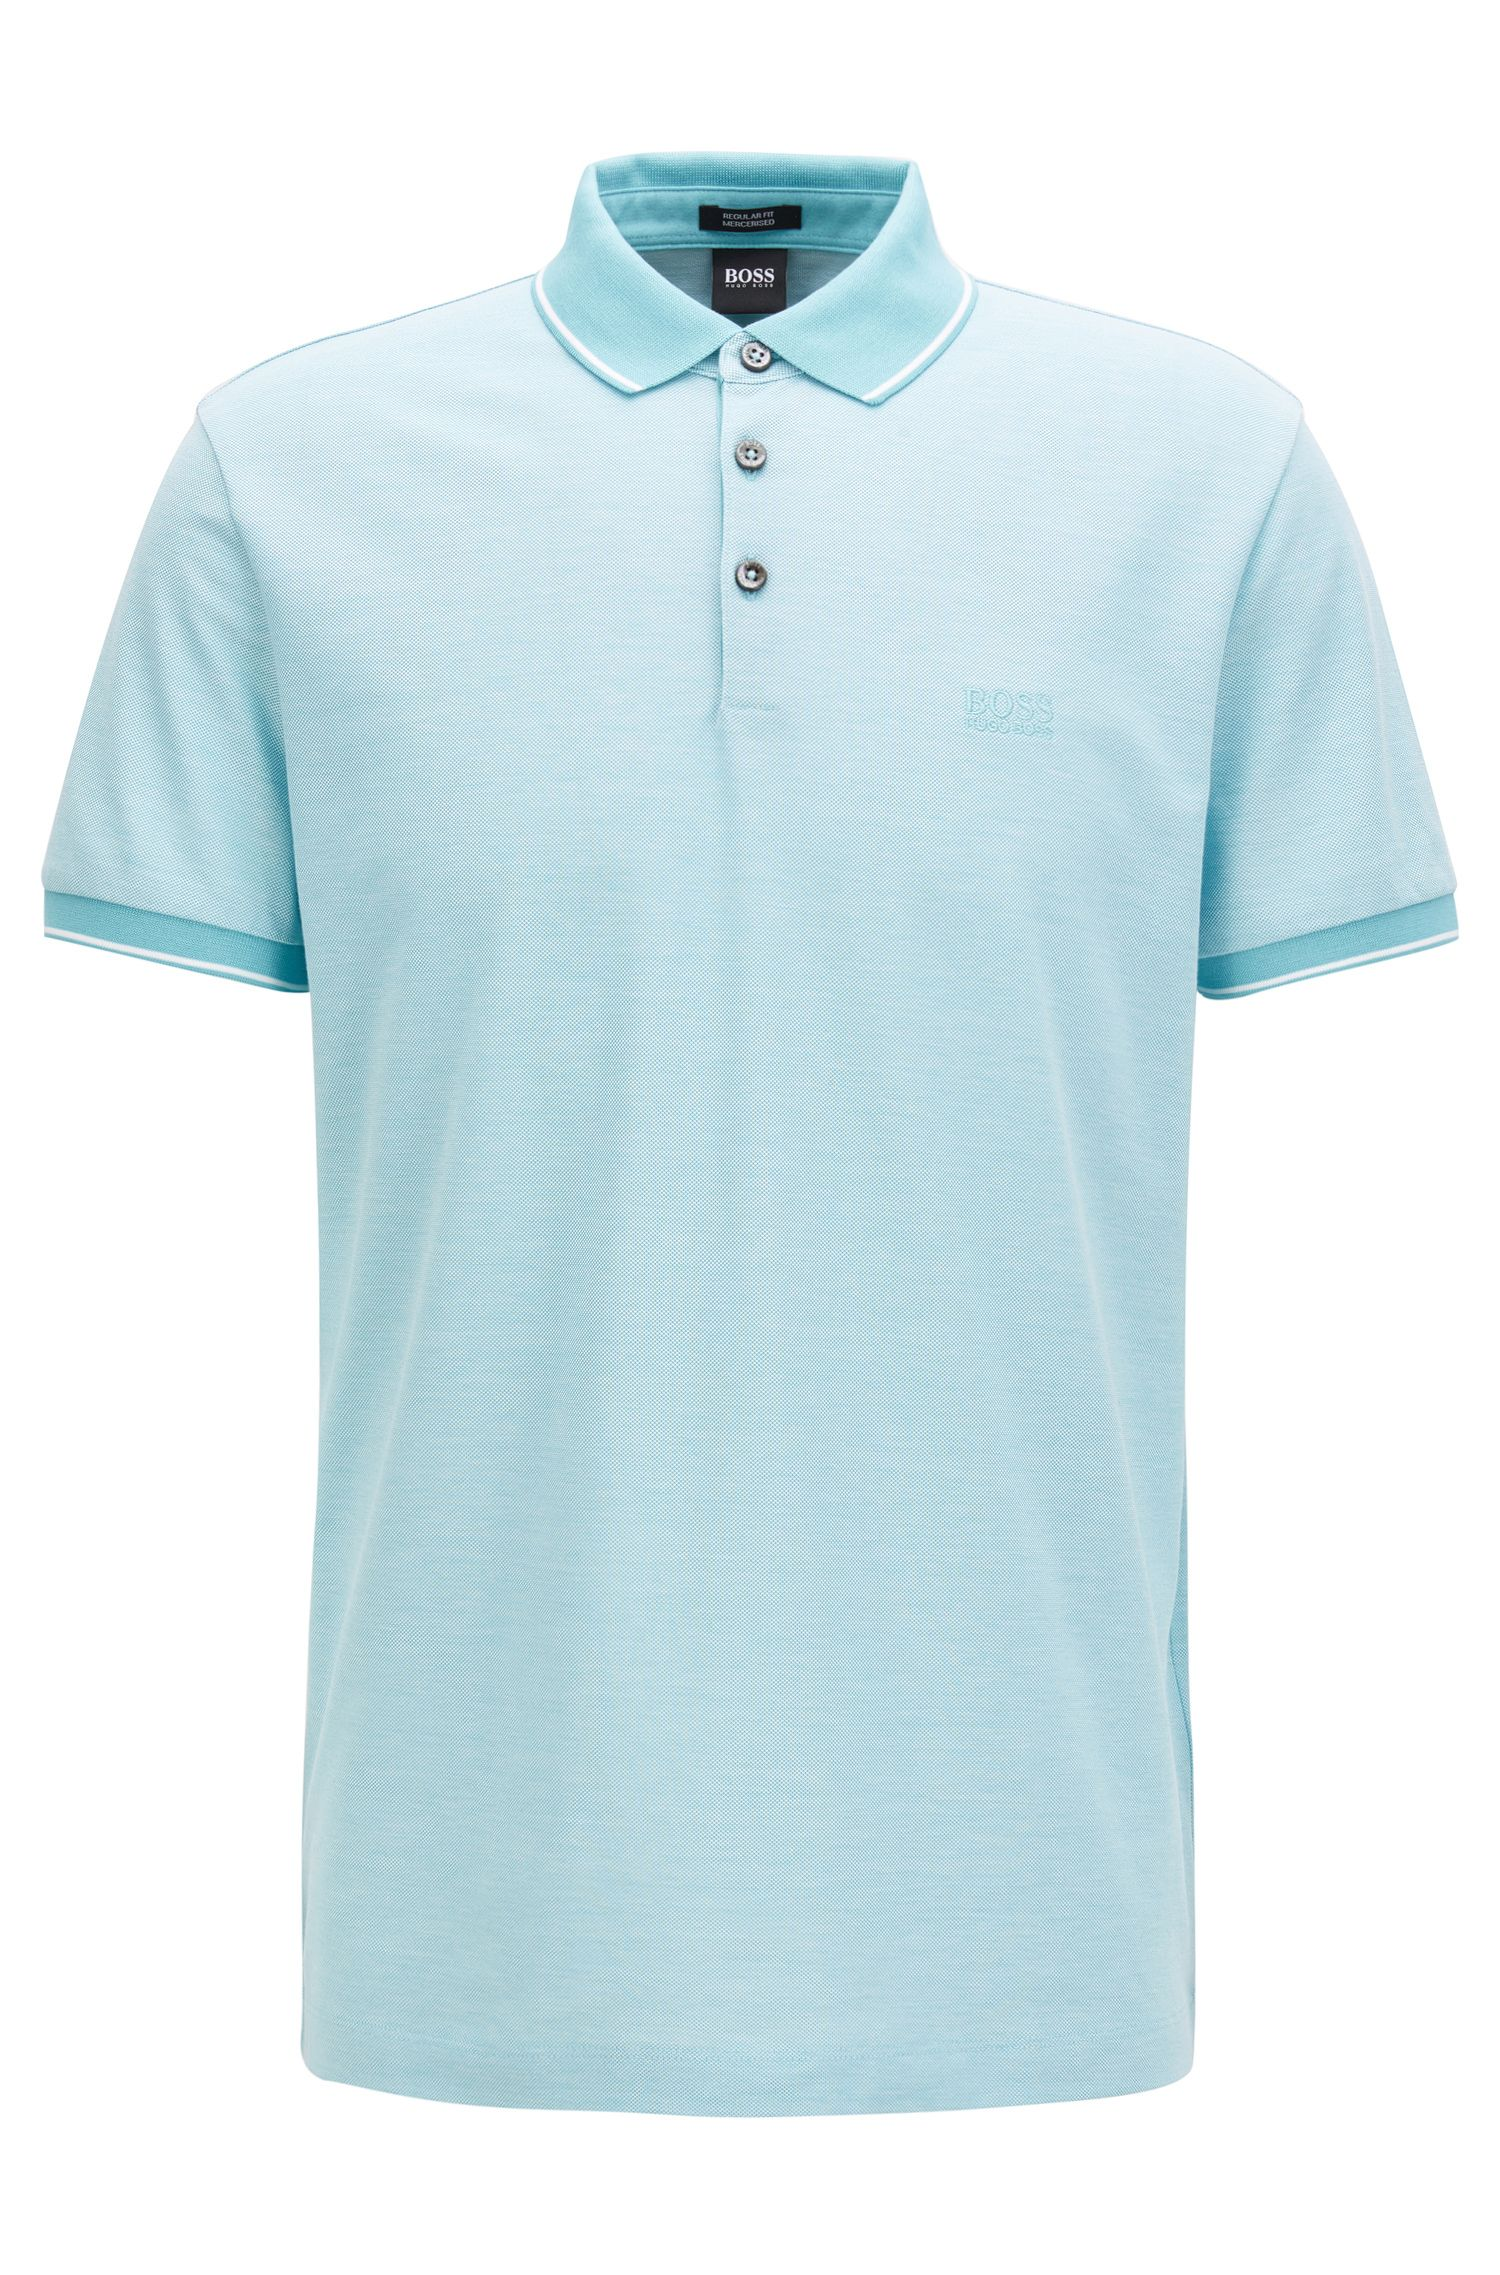 Polo regular fit en piqué de algodón mercerizado